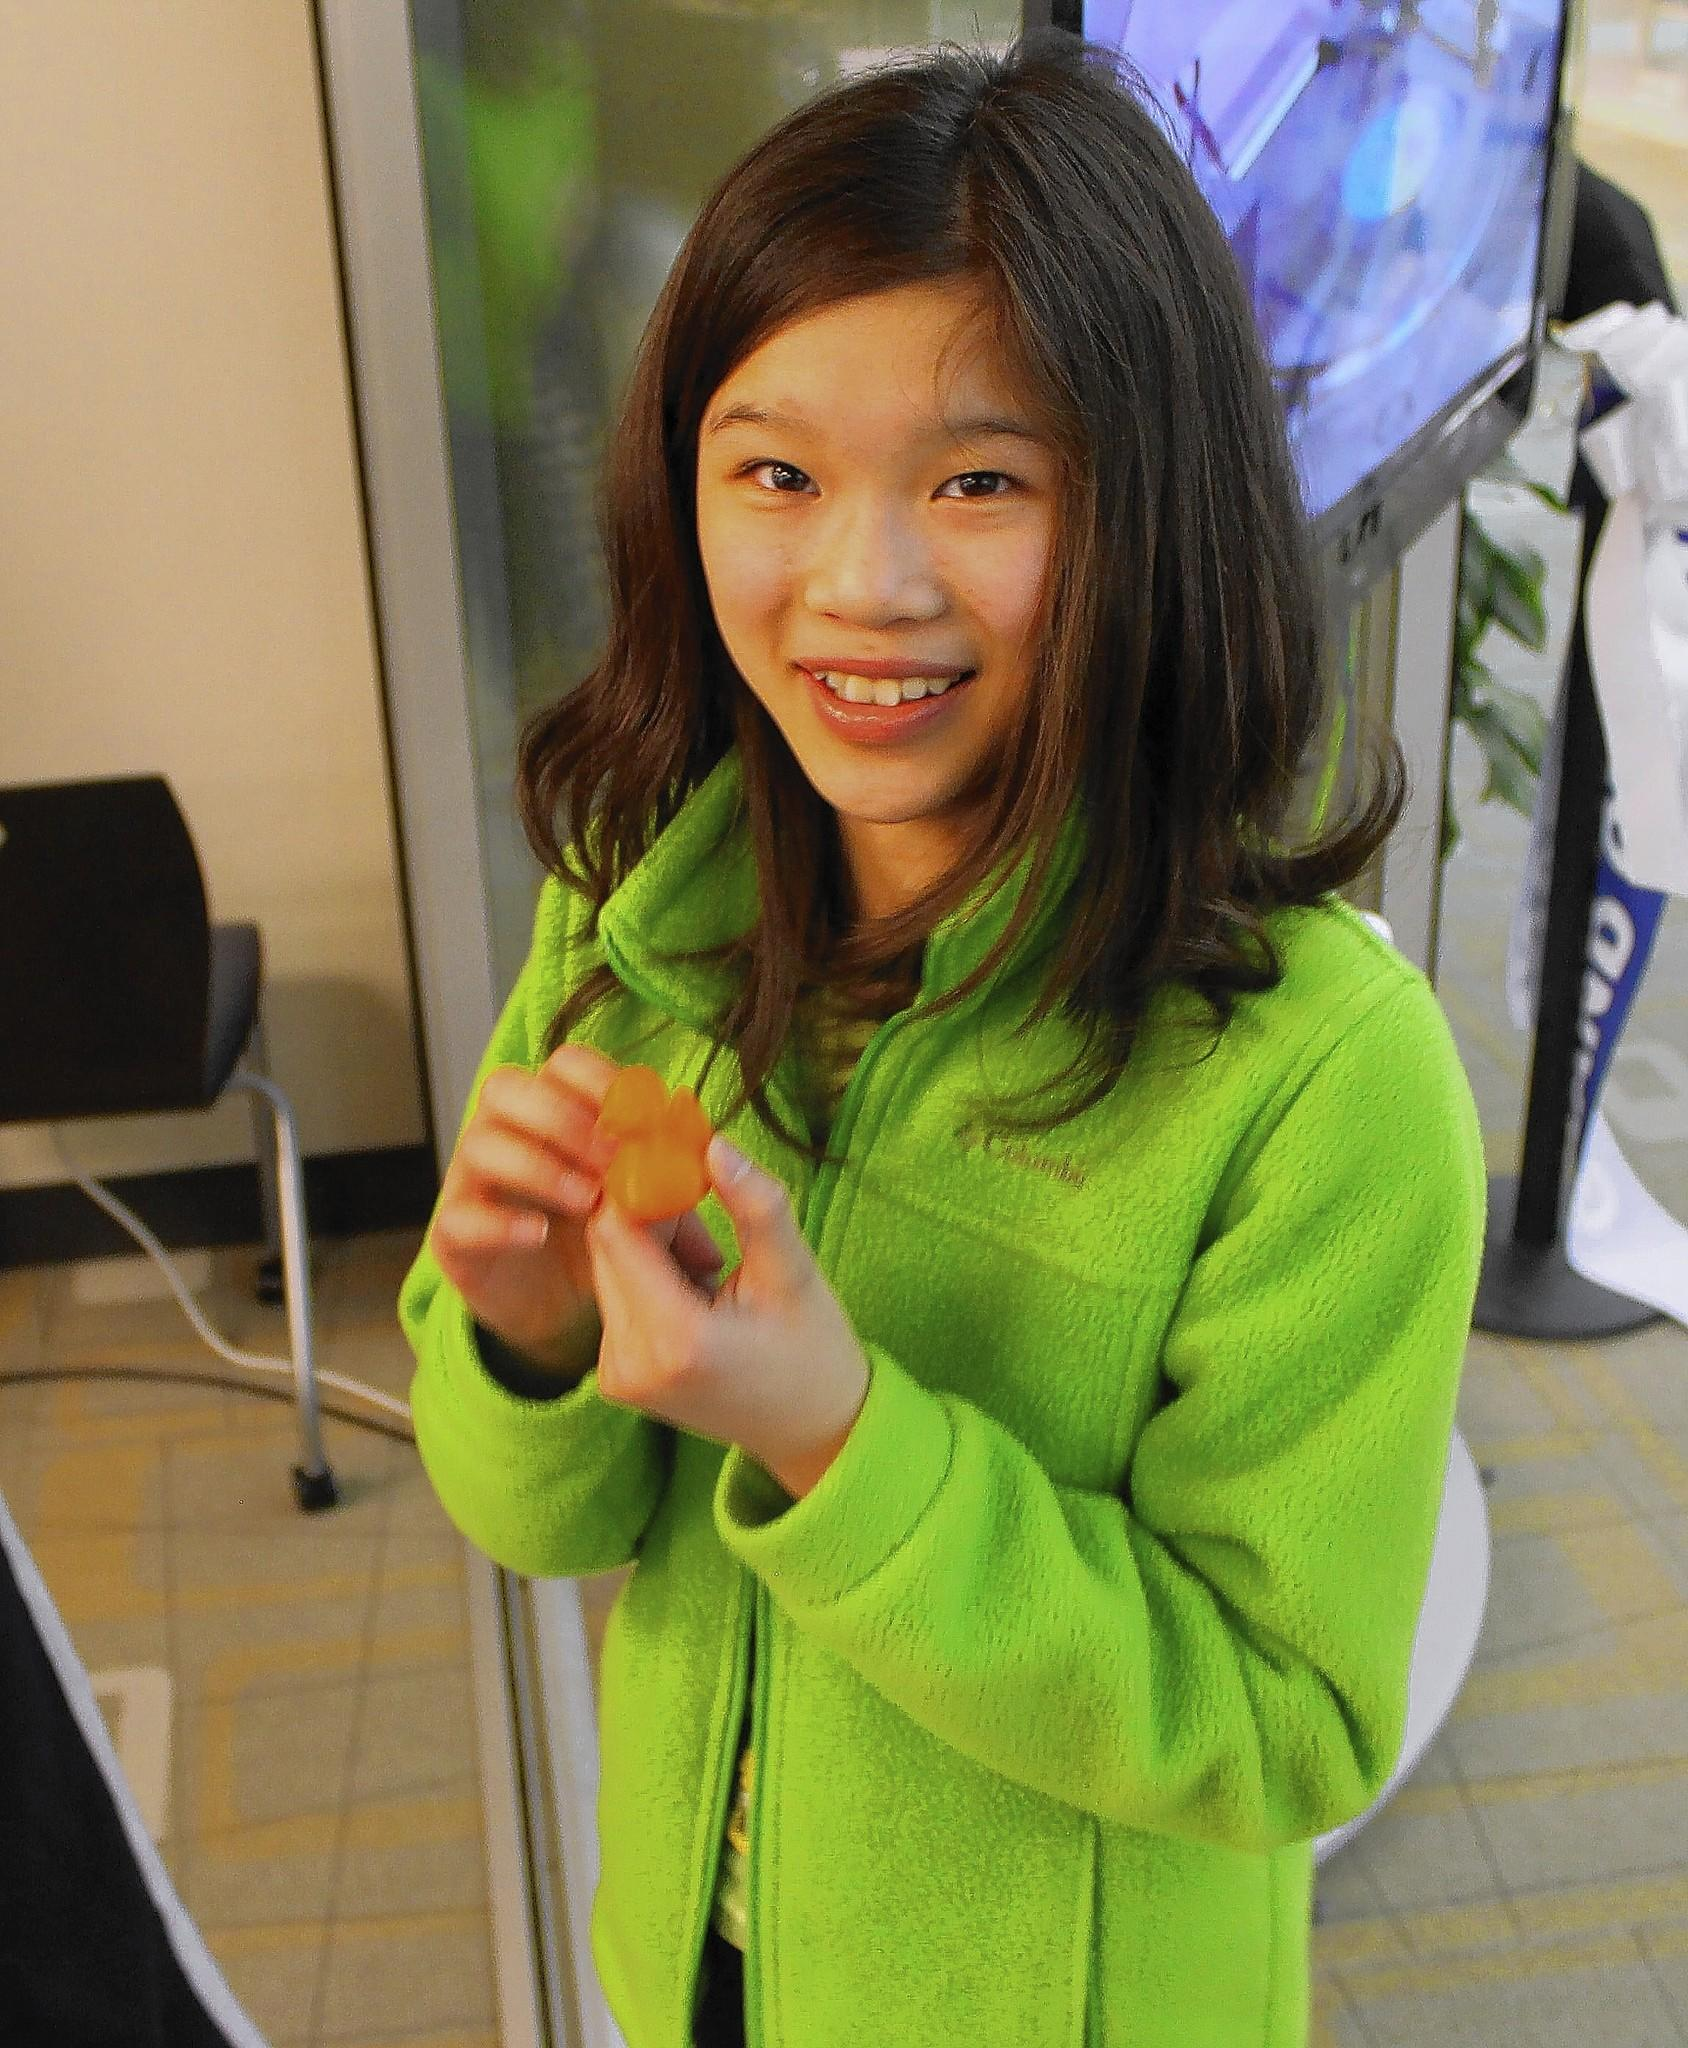 """It's pretty cool, all this neat stuff,"" said Elizabeth Hung, 11, holding an object fabricated by a 3-D printer at the new Idea Lab at the 95th Street Library."